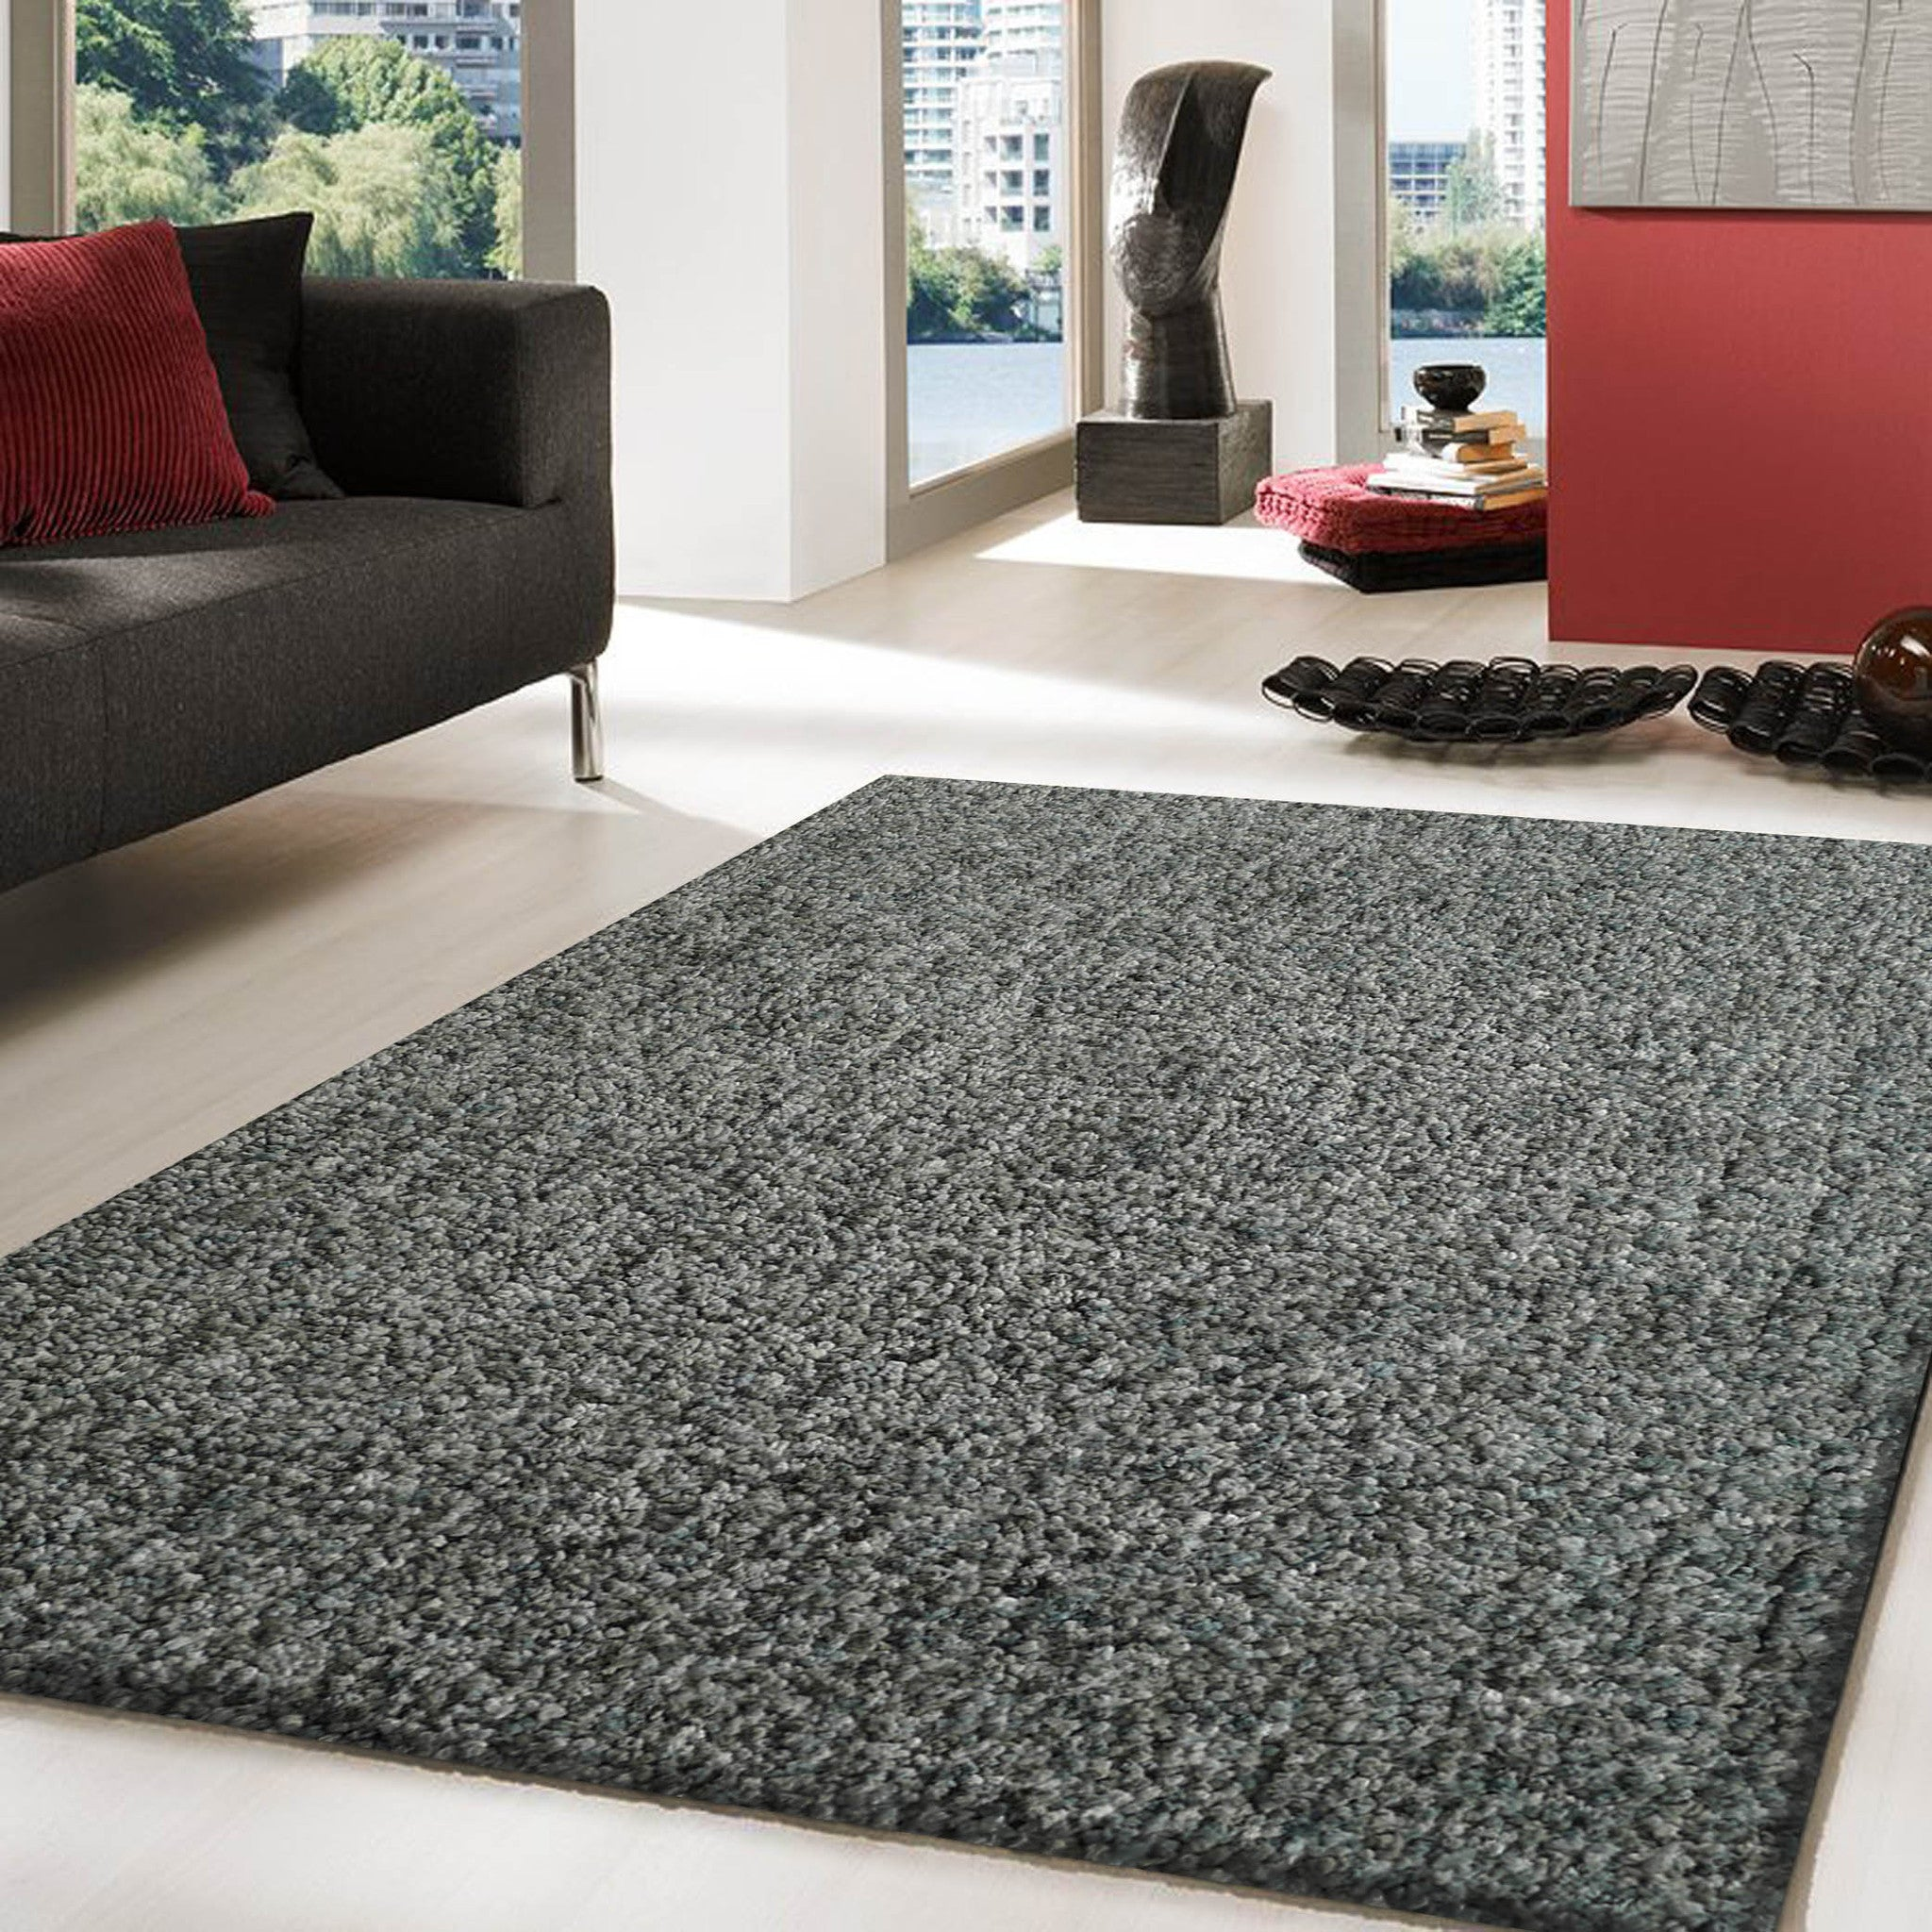 2 Piece Set | Solid Blue Thick Plush Shag Area Rug With Rug Pad ...